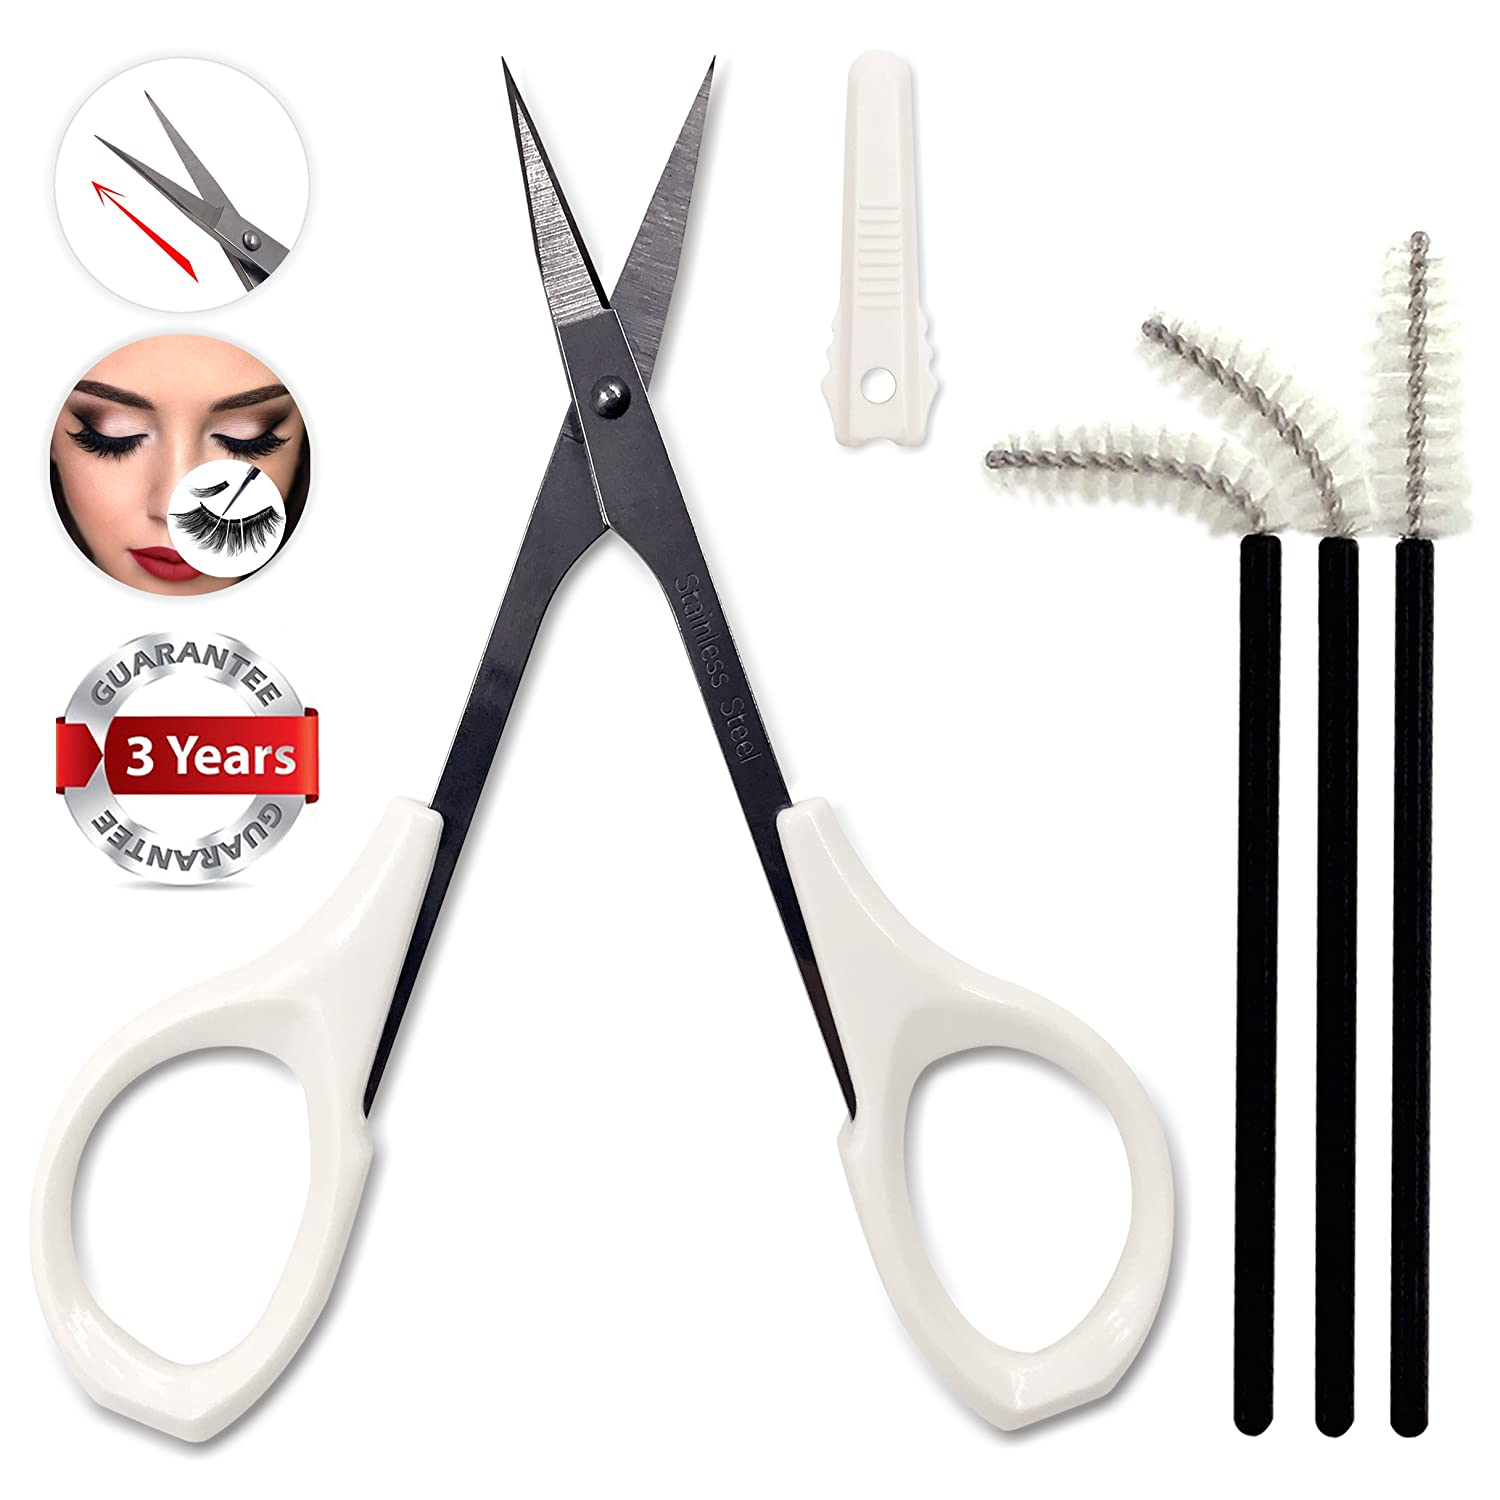 Small Craft Scissors Straight Sharp for Trimmer Precision Shear Cuticle Nail Eyebrow Travel Sewing with Safe Protective Cap by Tidawave